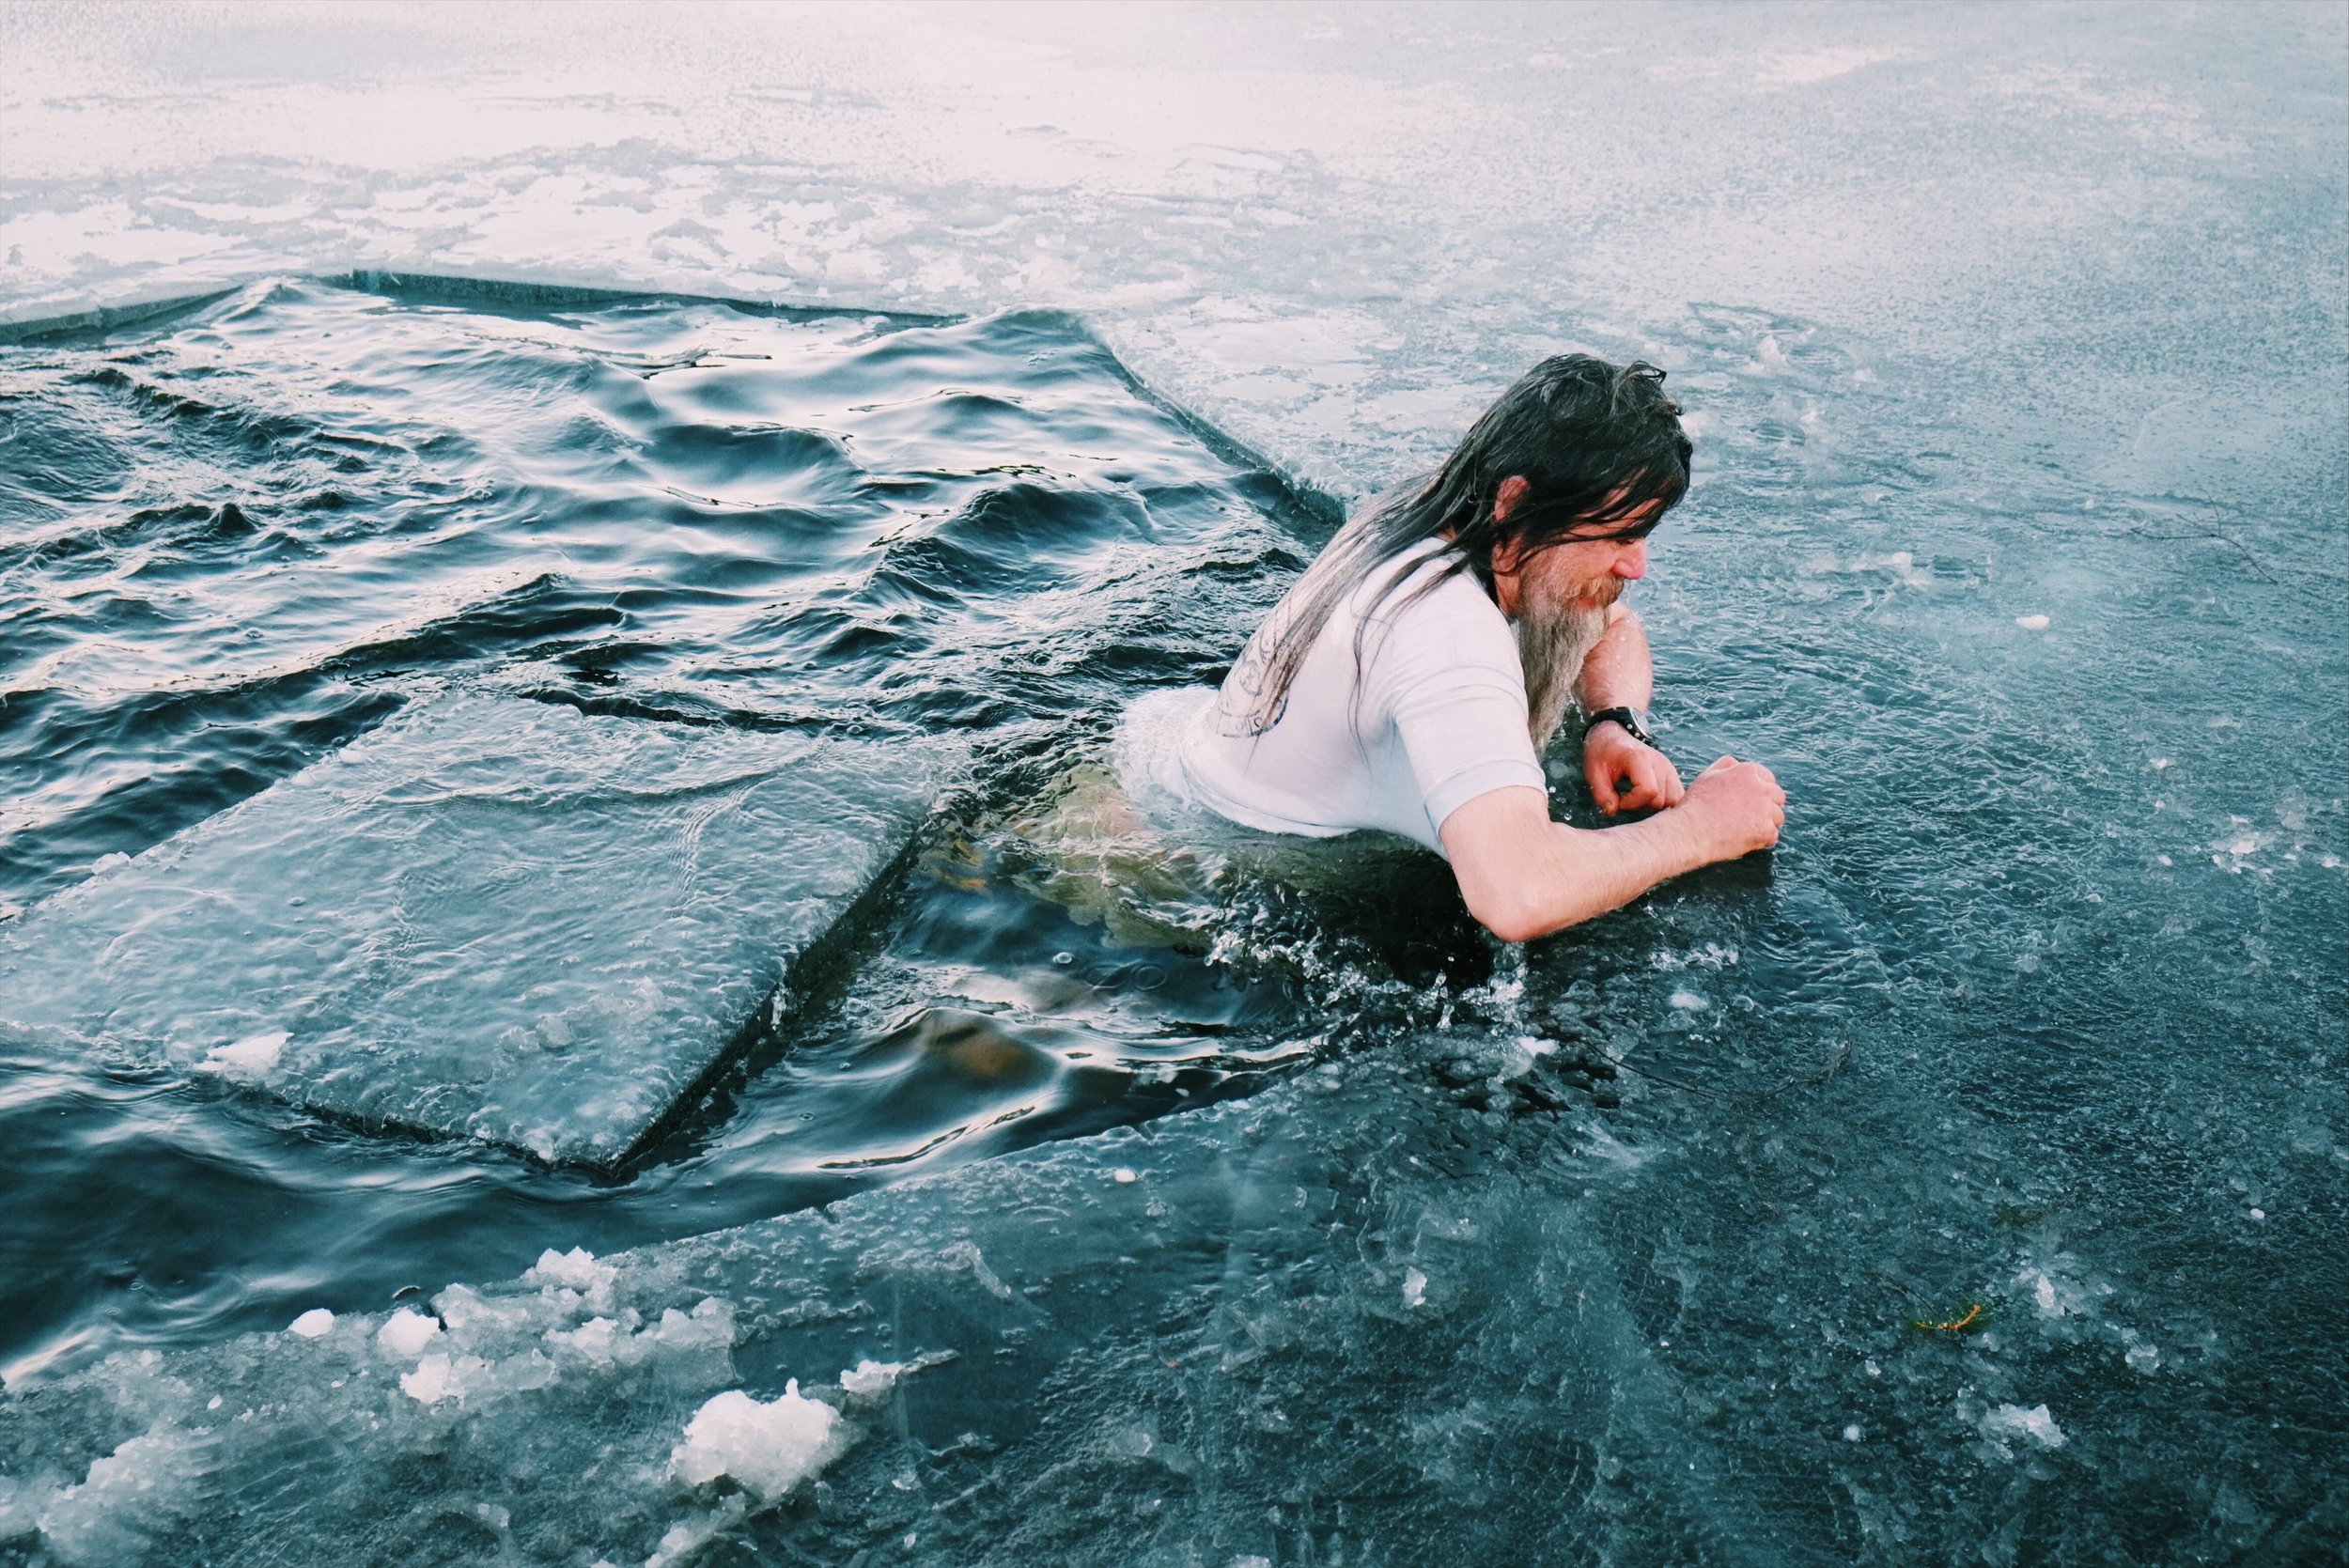 Ice Swimming in Norway, Cryonism by Joost Bastmeijer.jpeg